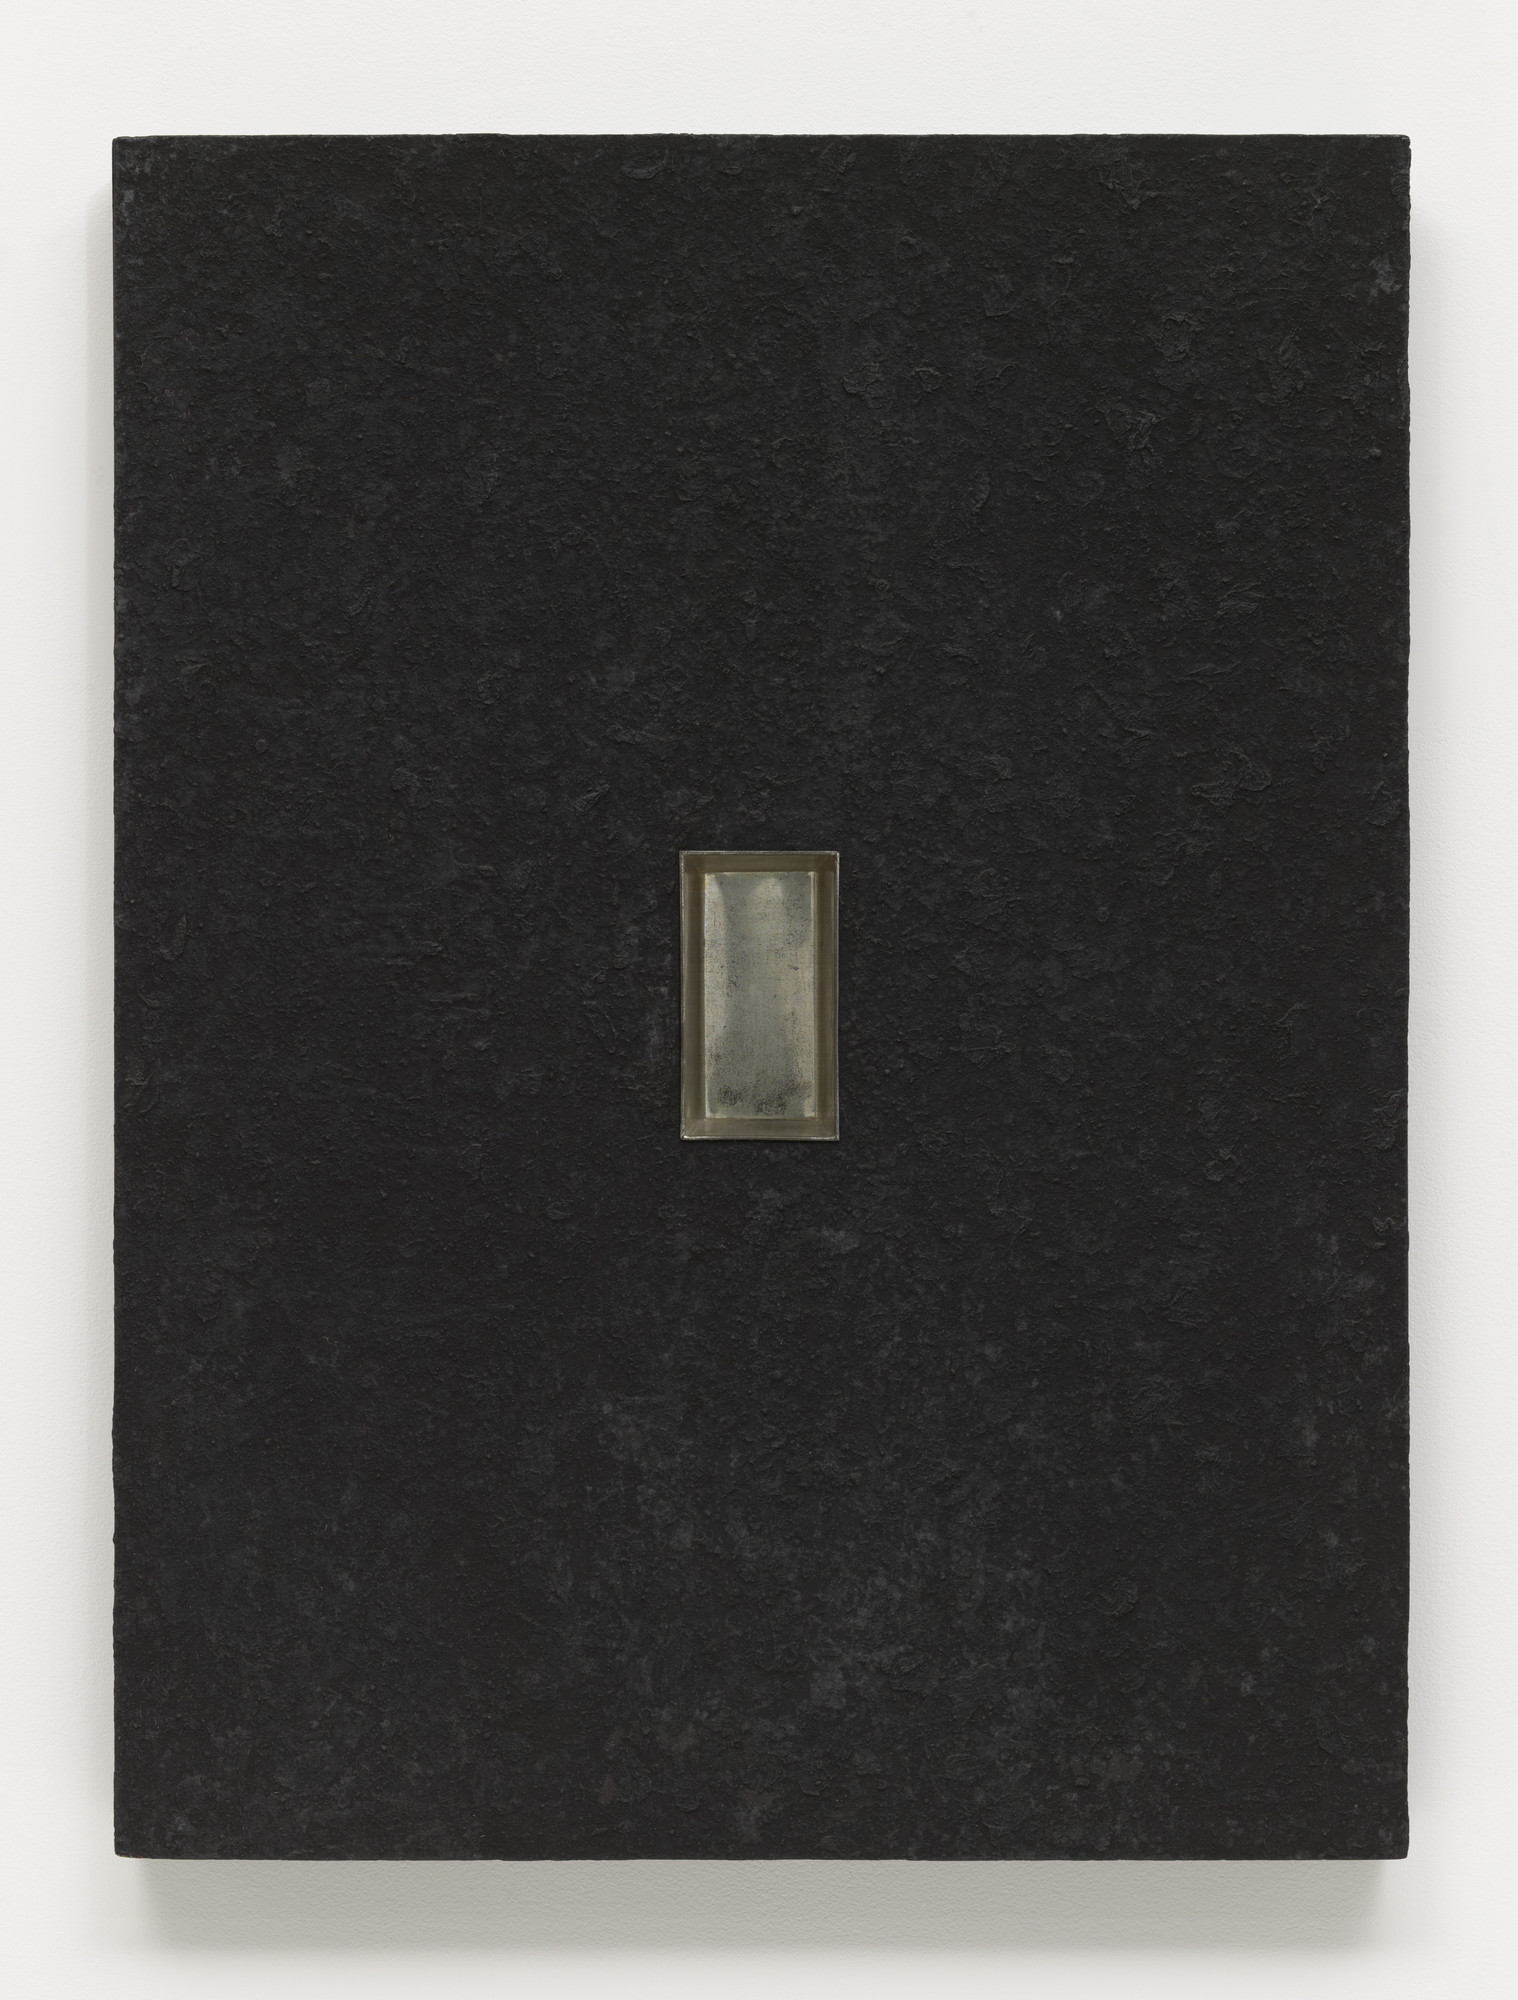 Donald Judd. Untitled. 1961